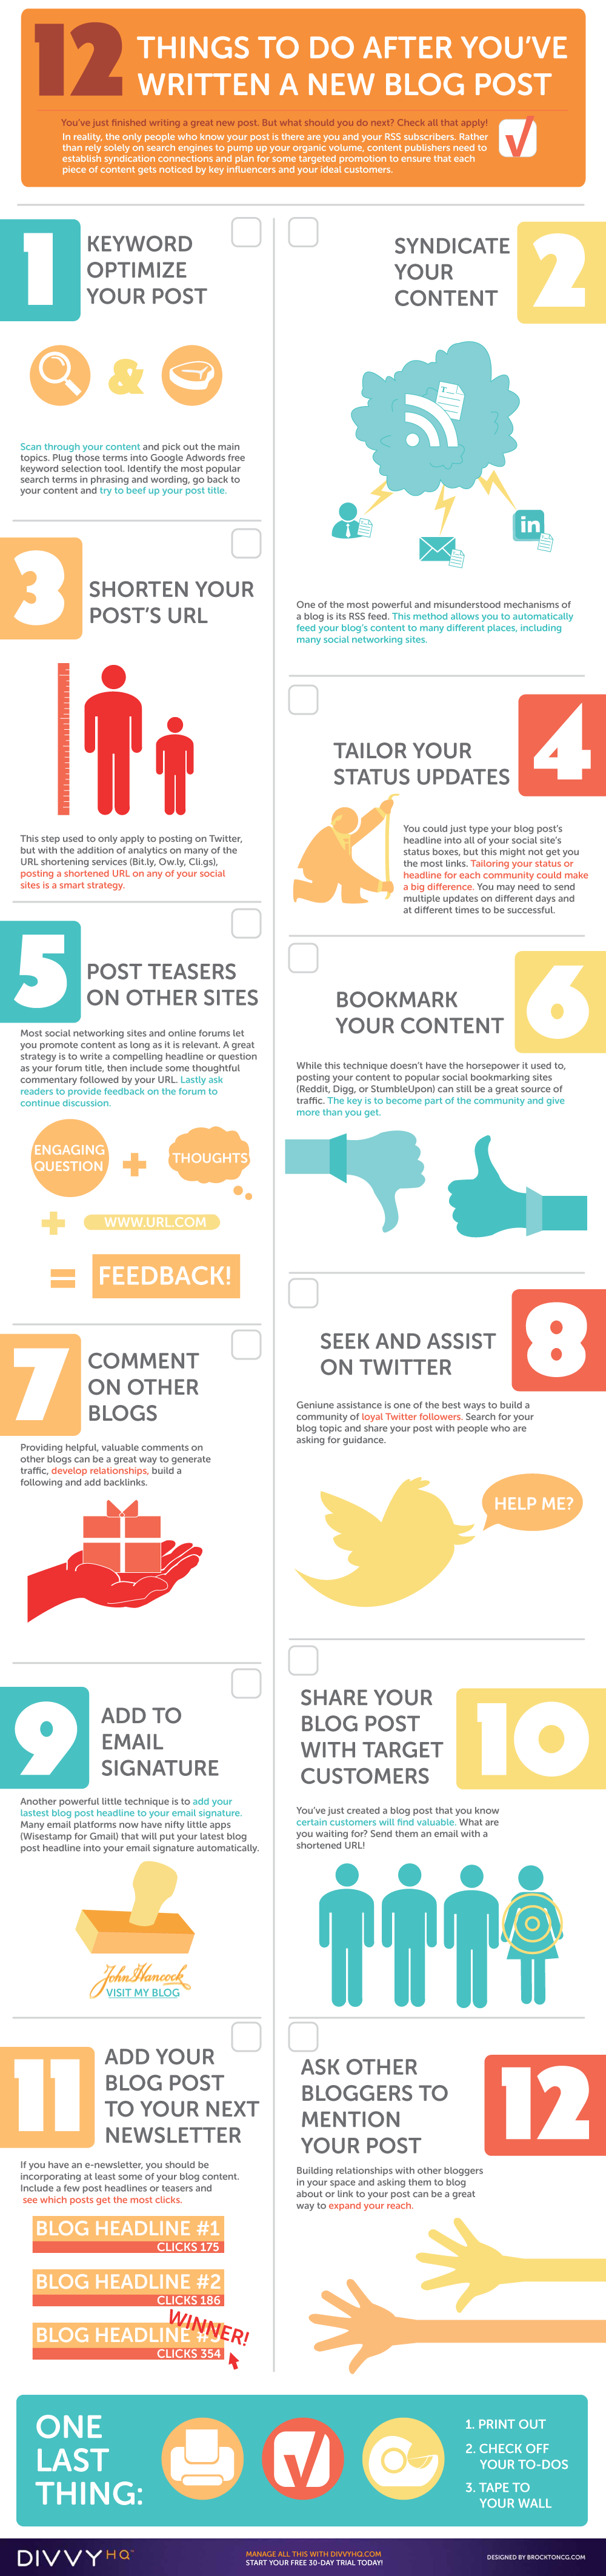 An infographic with 12 great tips to promote your latest blog post. Nice list here